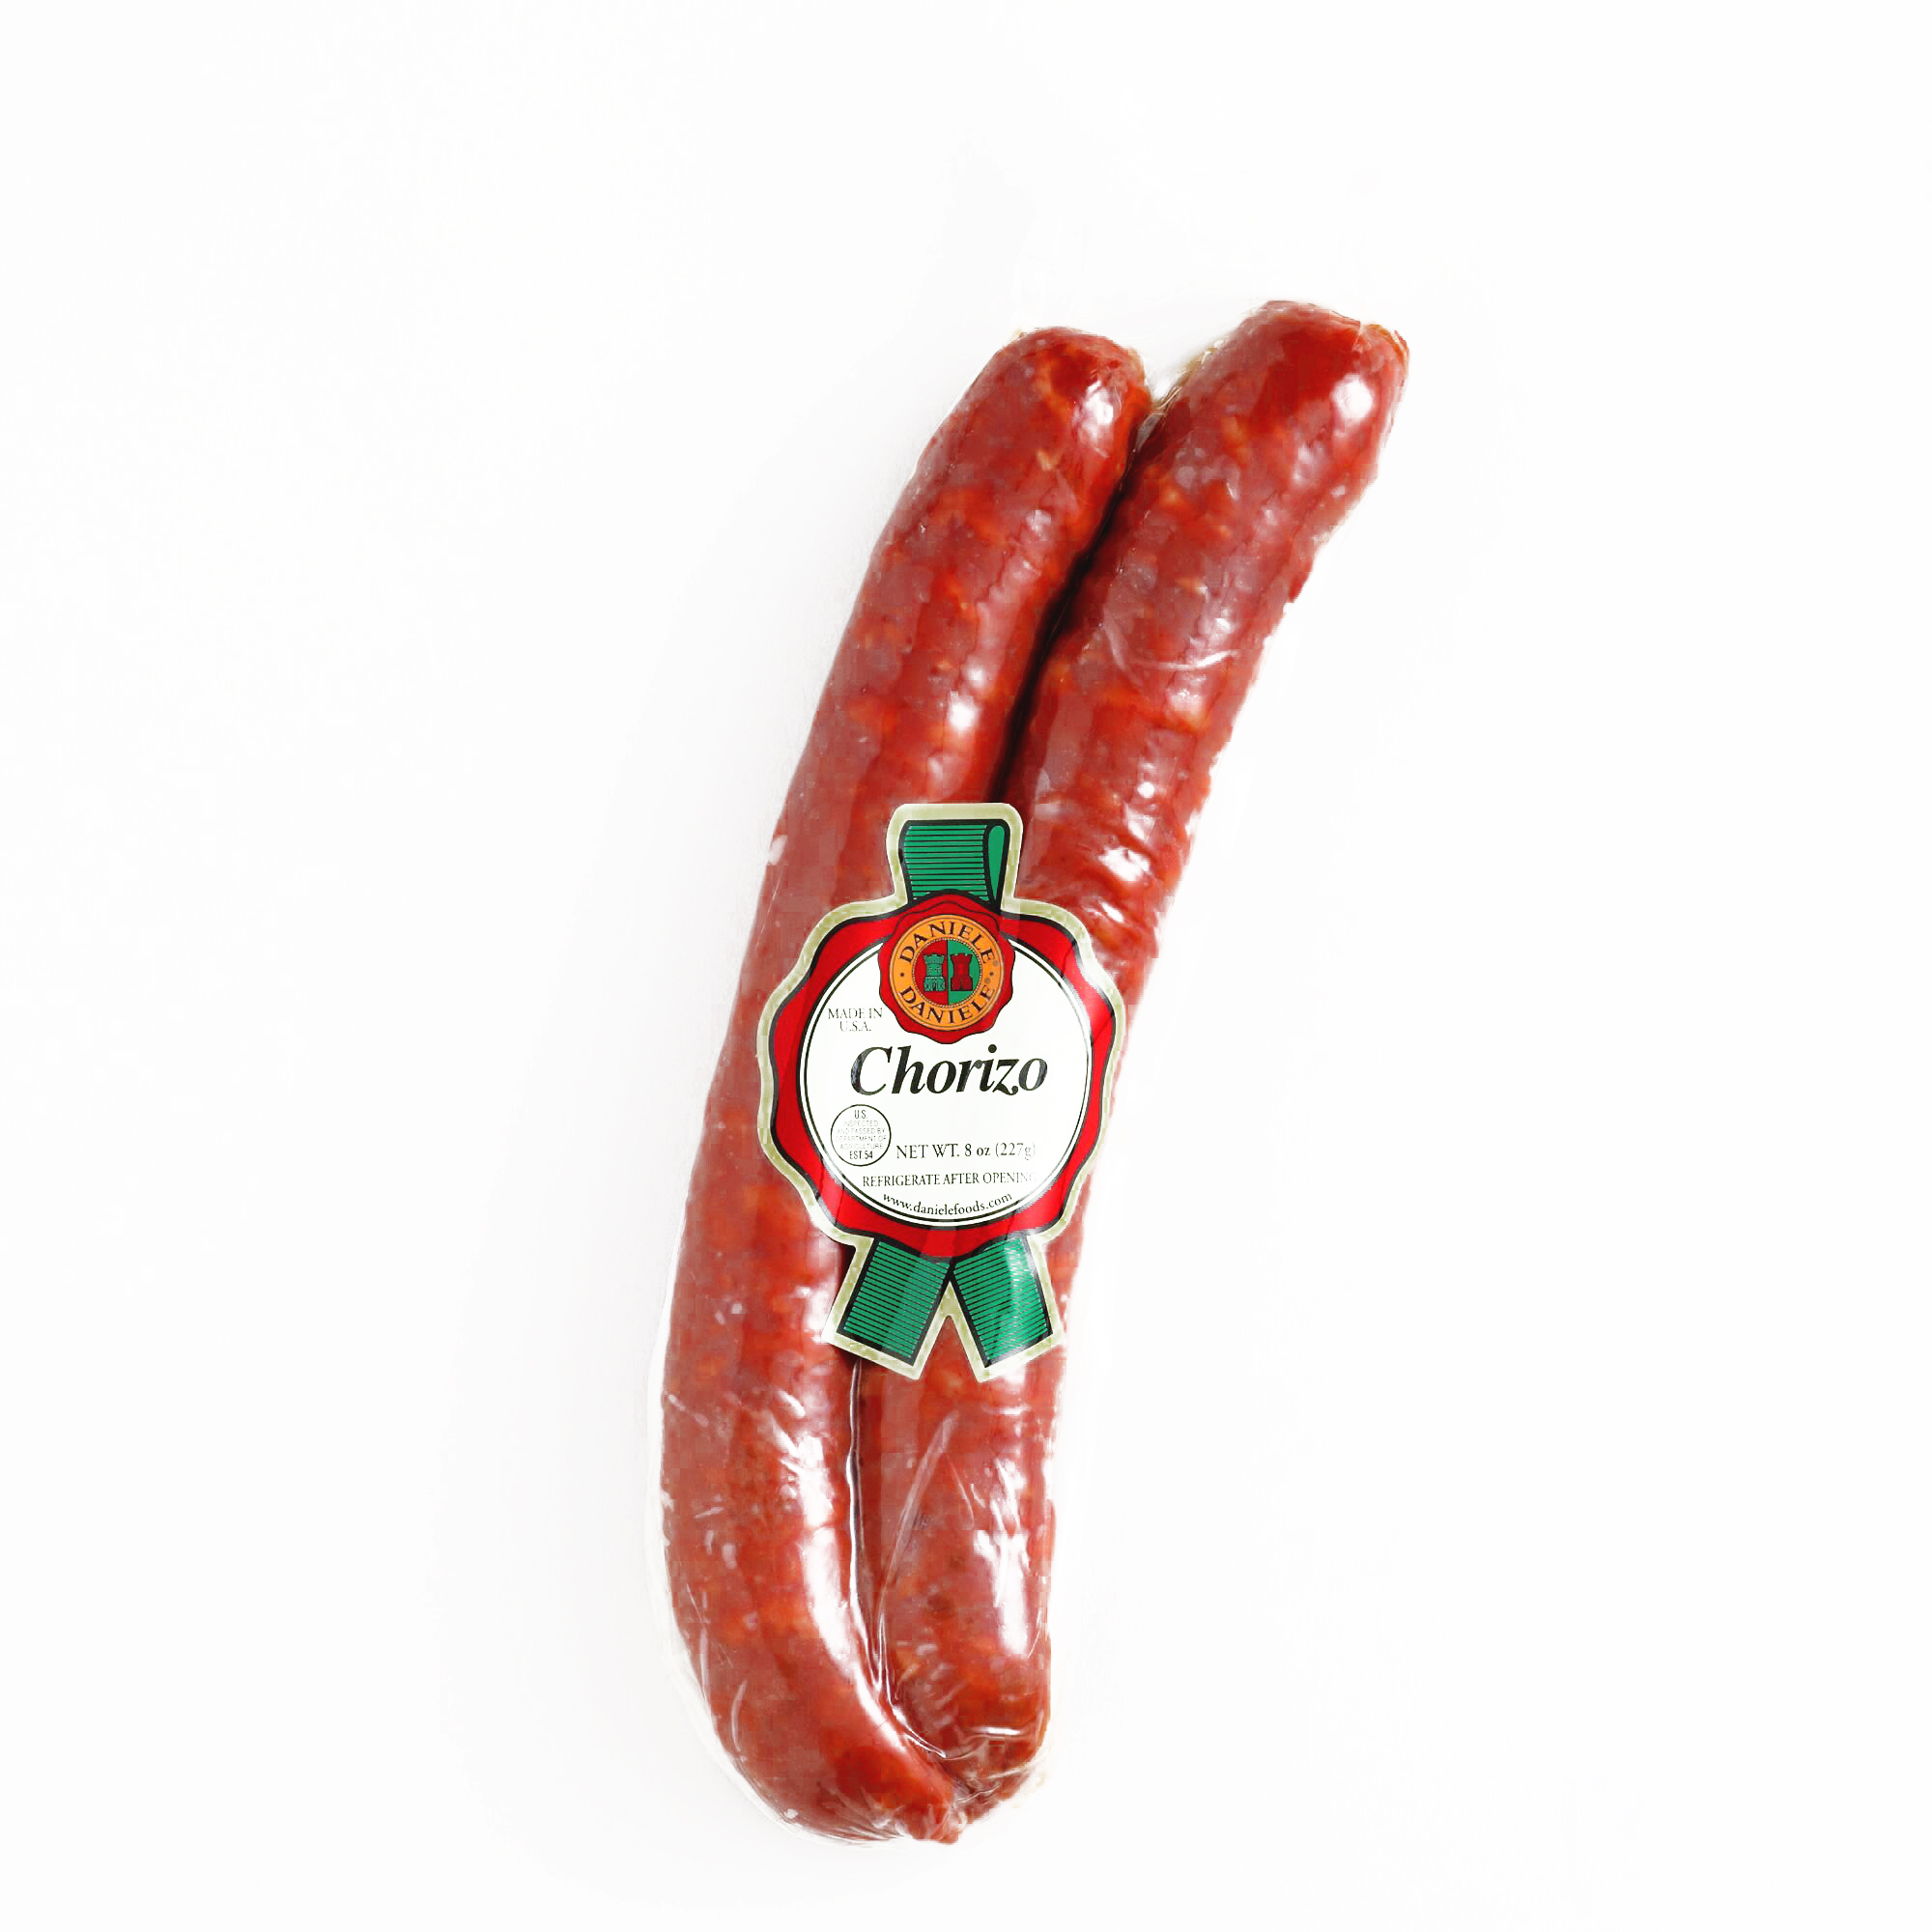 Daniele Chorizo Chub \t8 oz each (1 Item Per Order, not per case) by